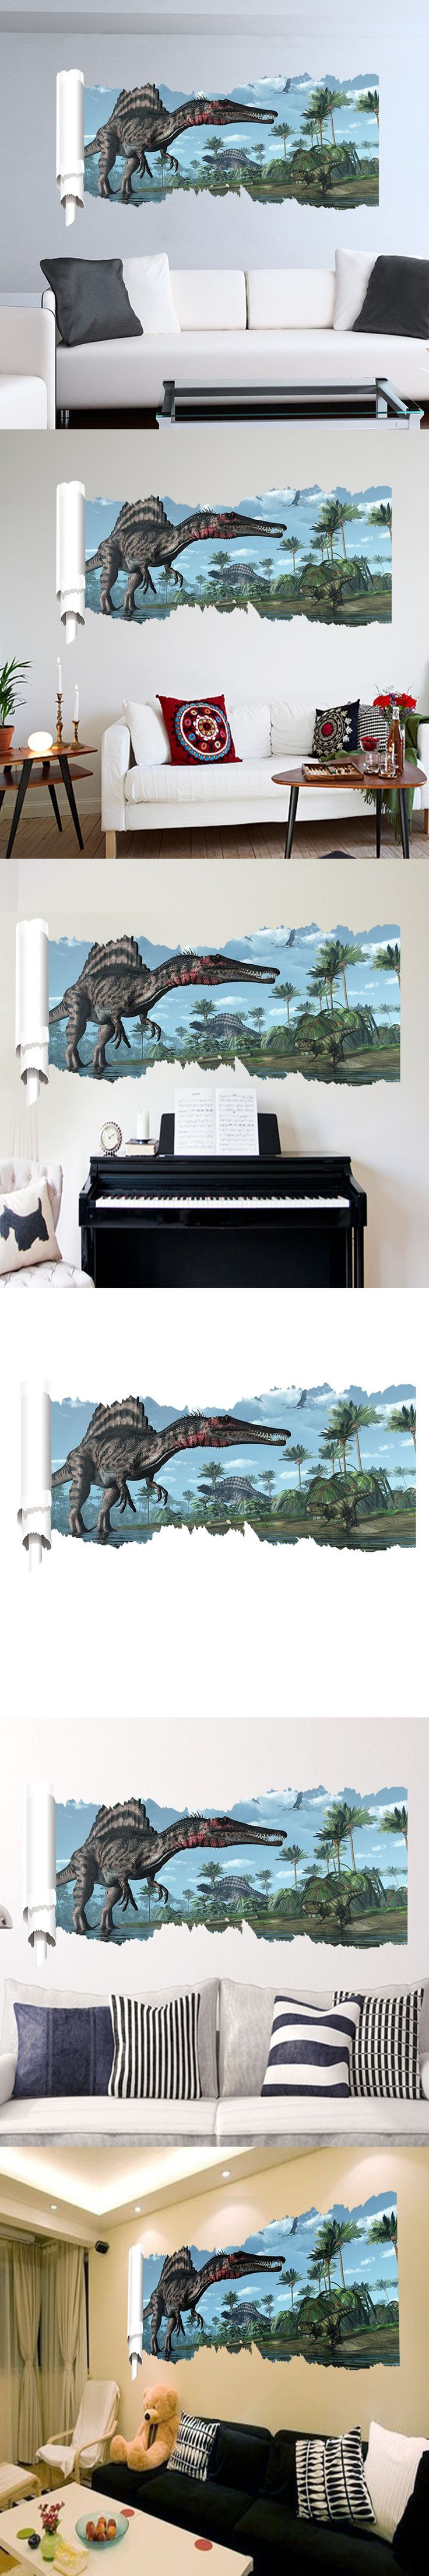 best 25 dinosaur wall stickers ideas on pinterest dinosaur wall cool dinosaur wall stickers art decals mural wallpaper decor home room diy decoration home decoration adesivo de parede